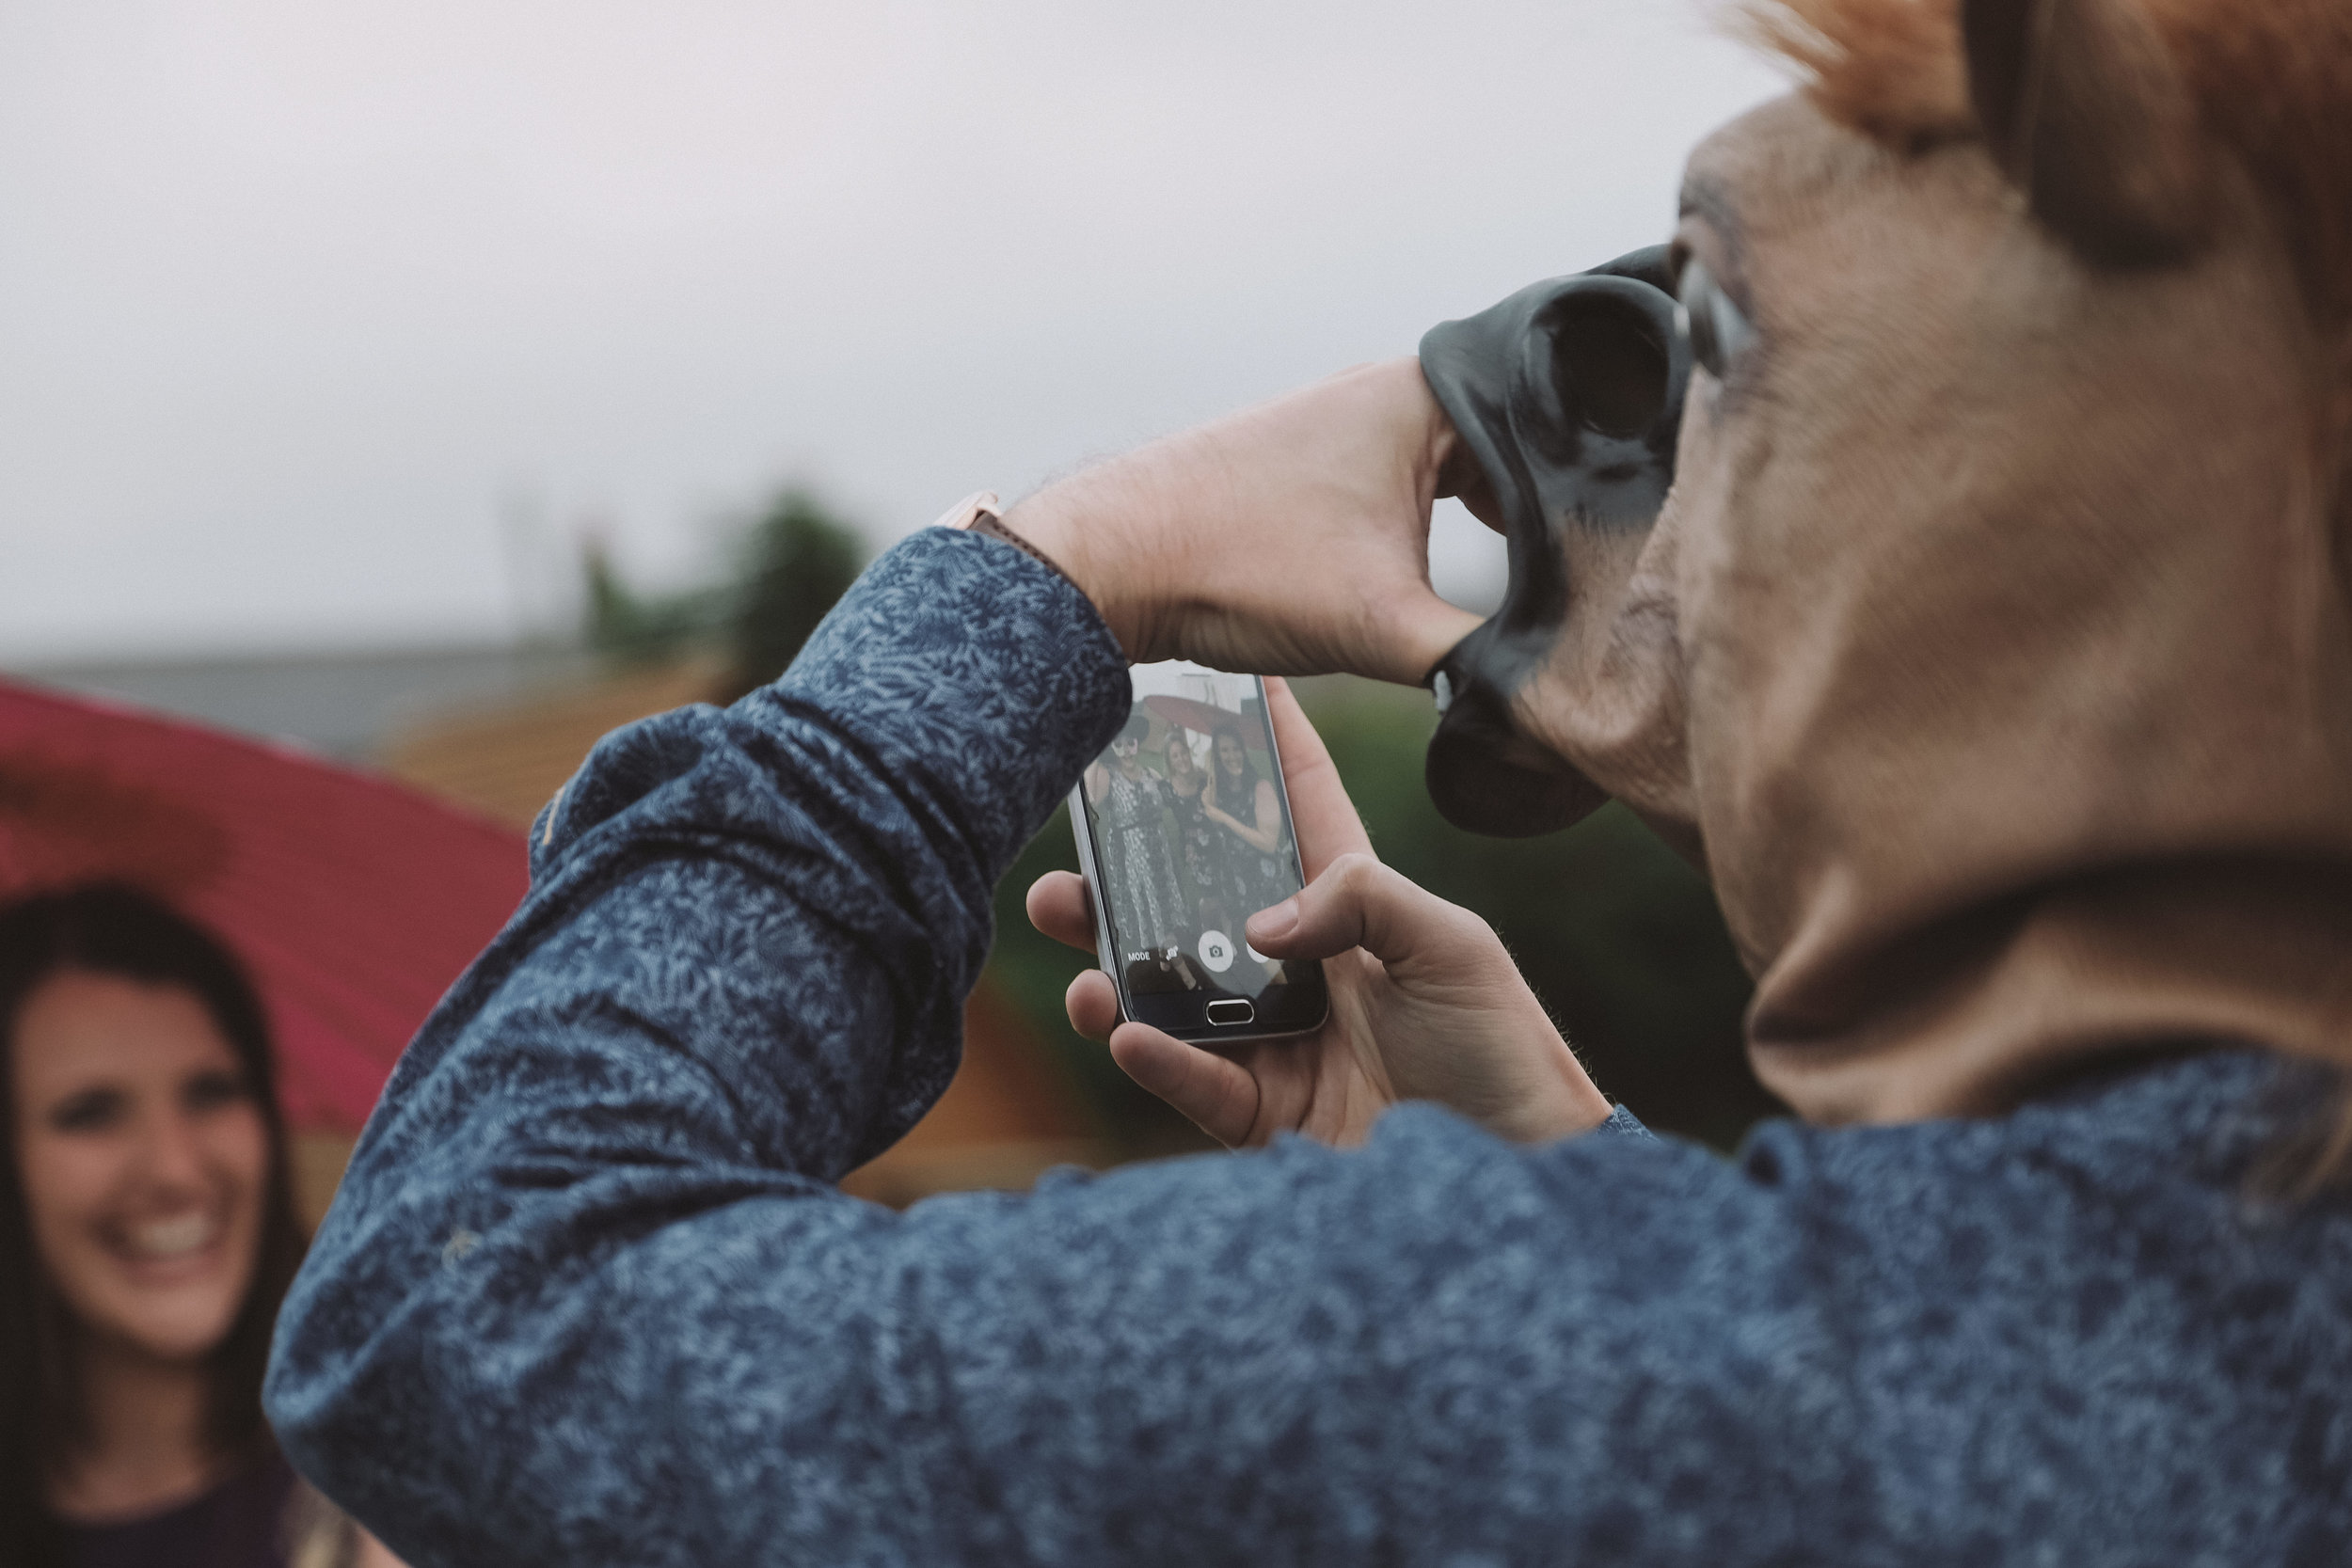 Wedding guest wearing a horse mask takes a photo